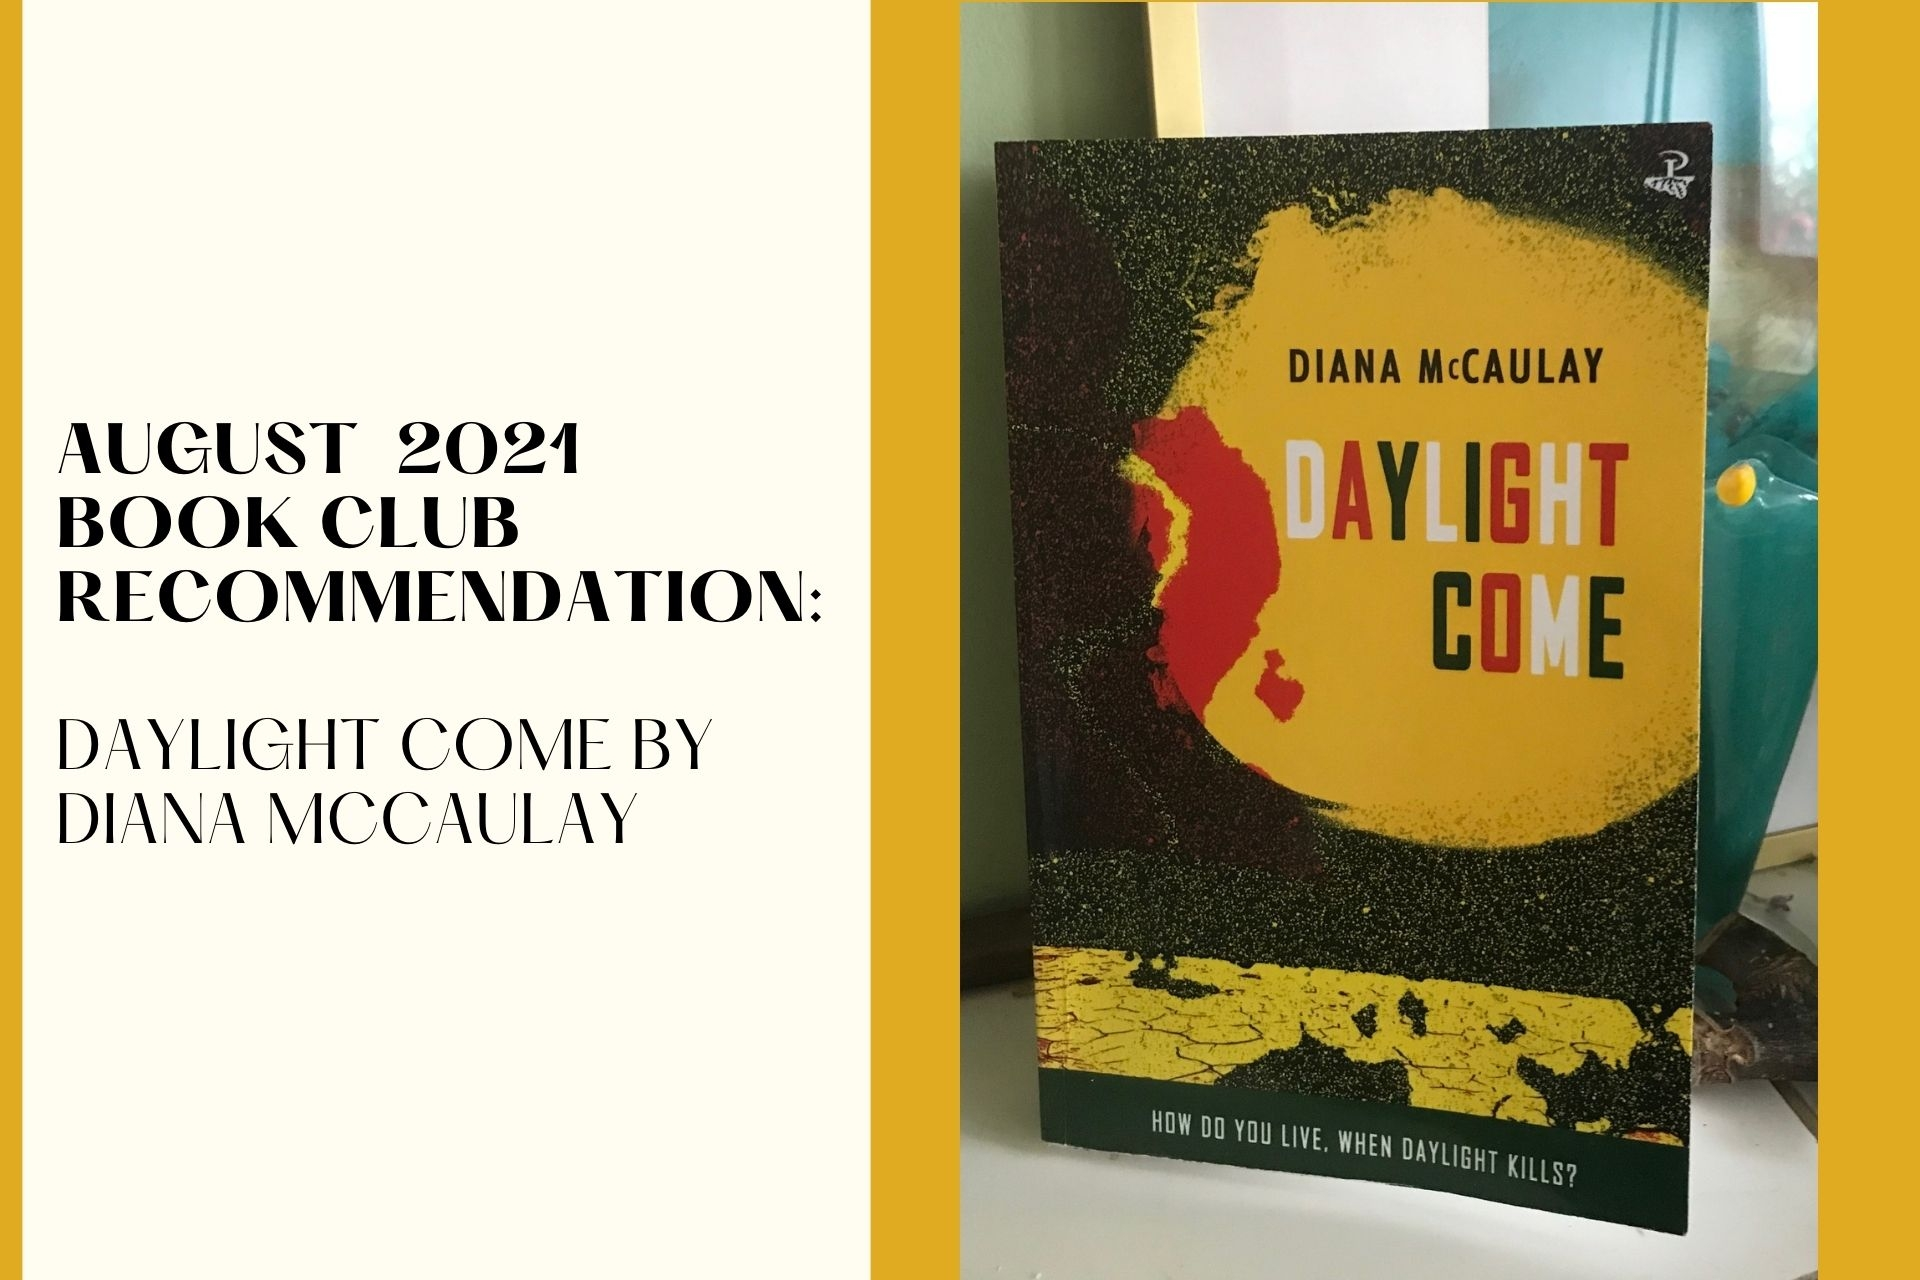 August 2021 Book Club Recommendation: Daylight Come by Diana McCaulay